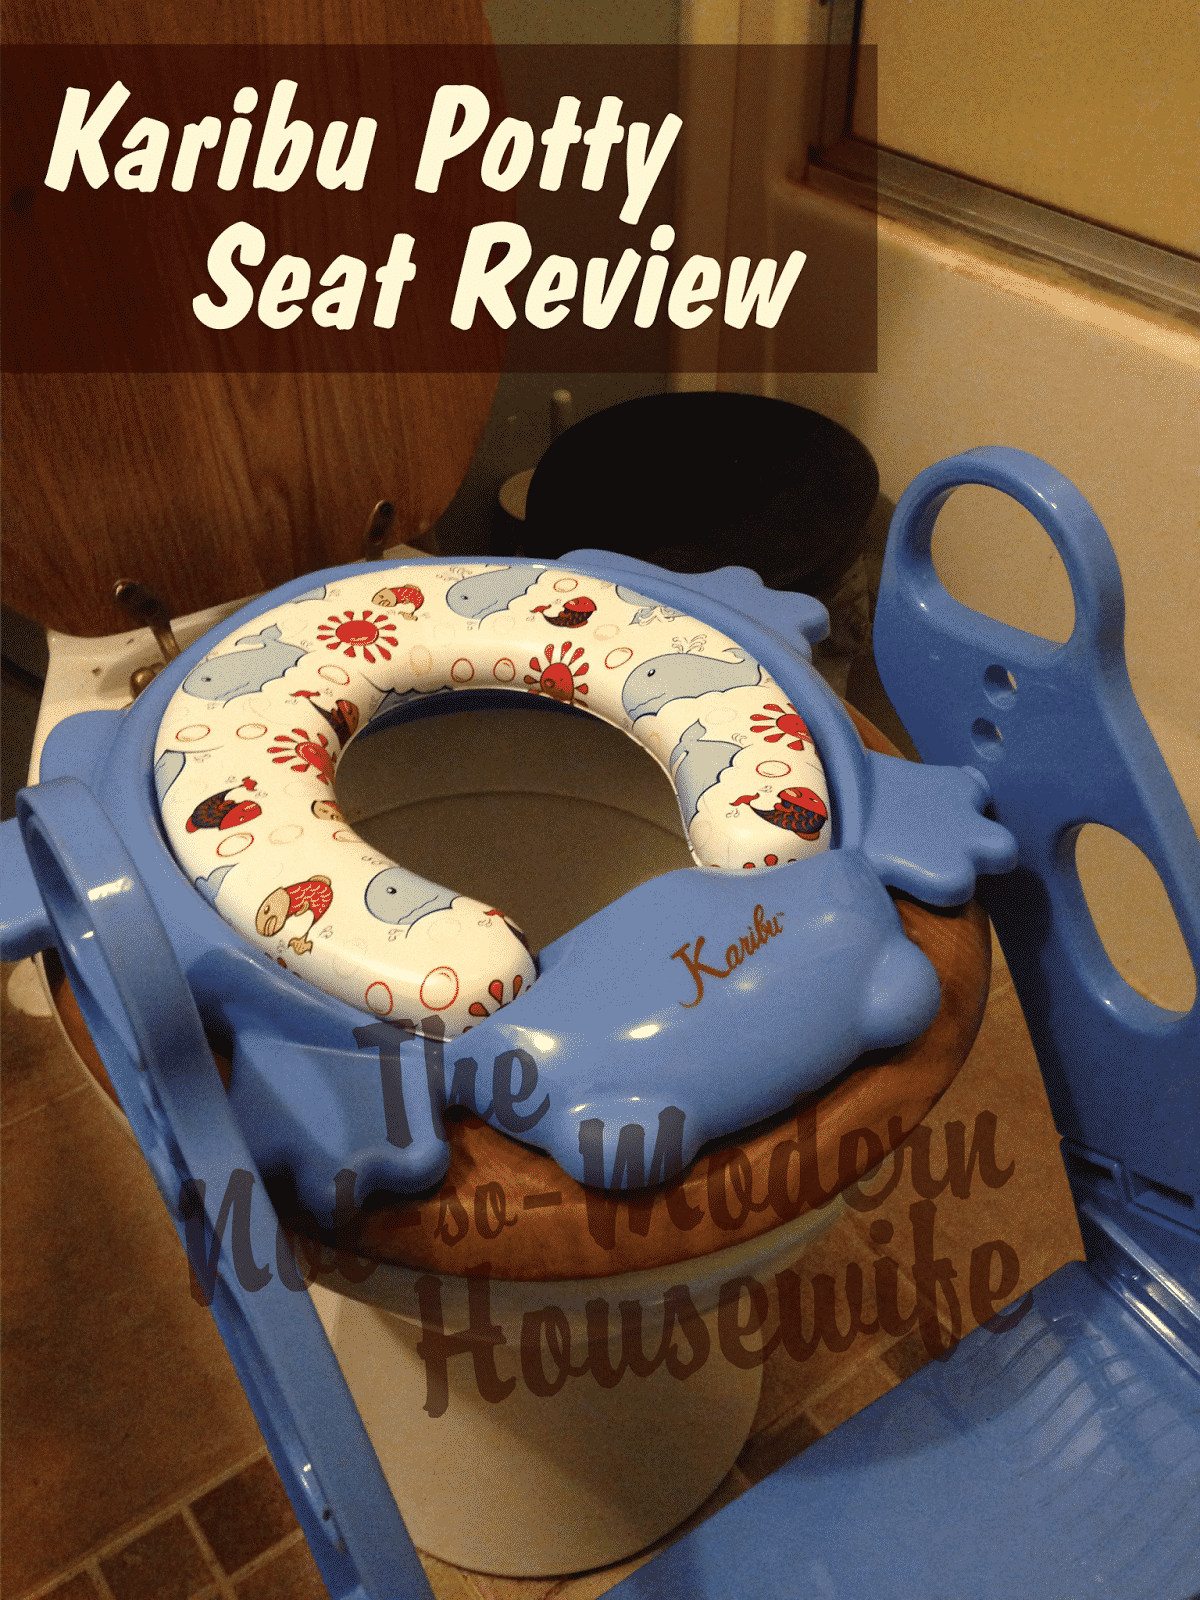 Karibu Potty Seat Review